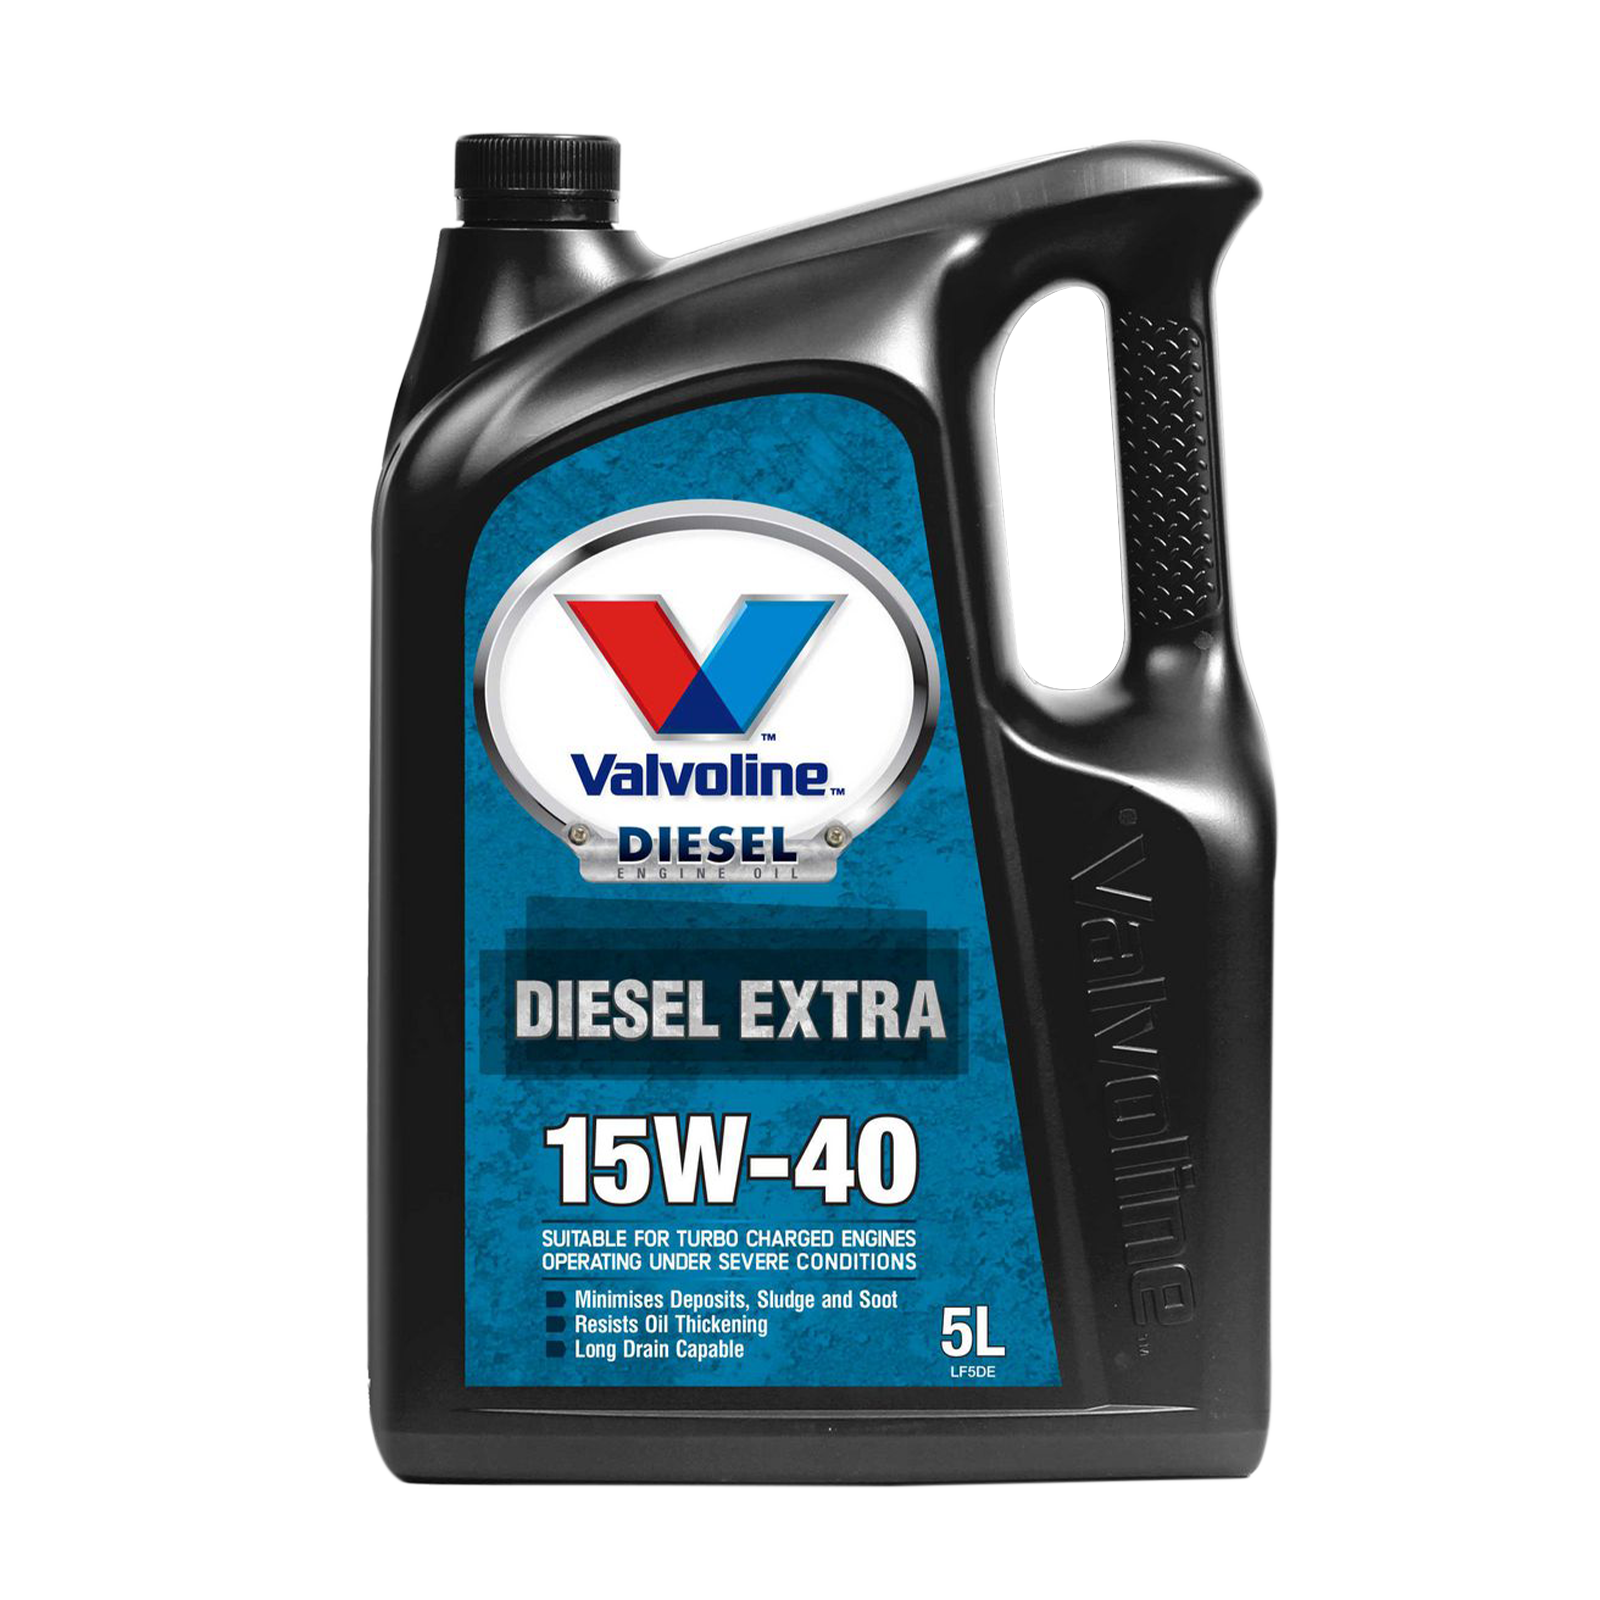 Valvoline Diesel Extra 15W-40 Engine Oil 5L For FORD